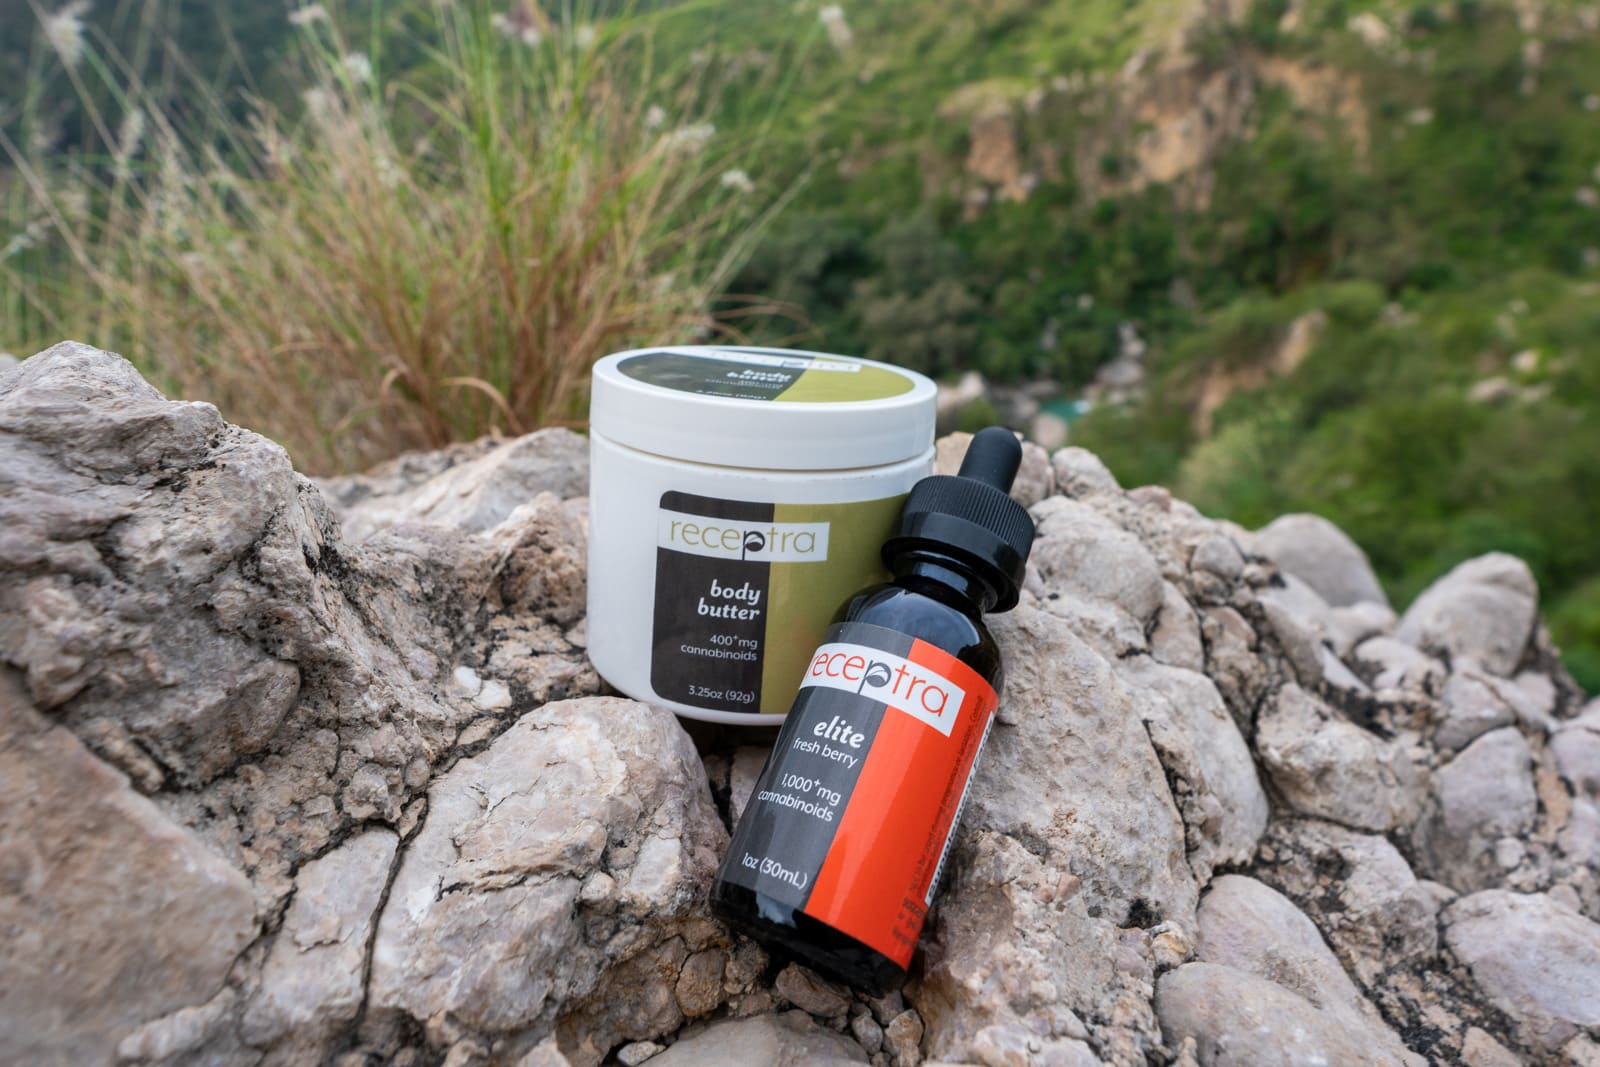 Review of Receptra Naturals CBD oil - Oil and body butter - Lost With Purpose travel blog